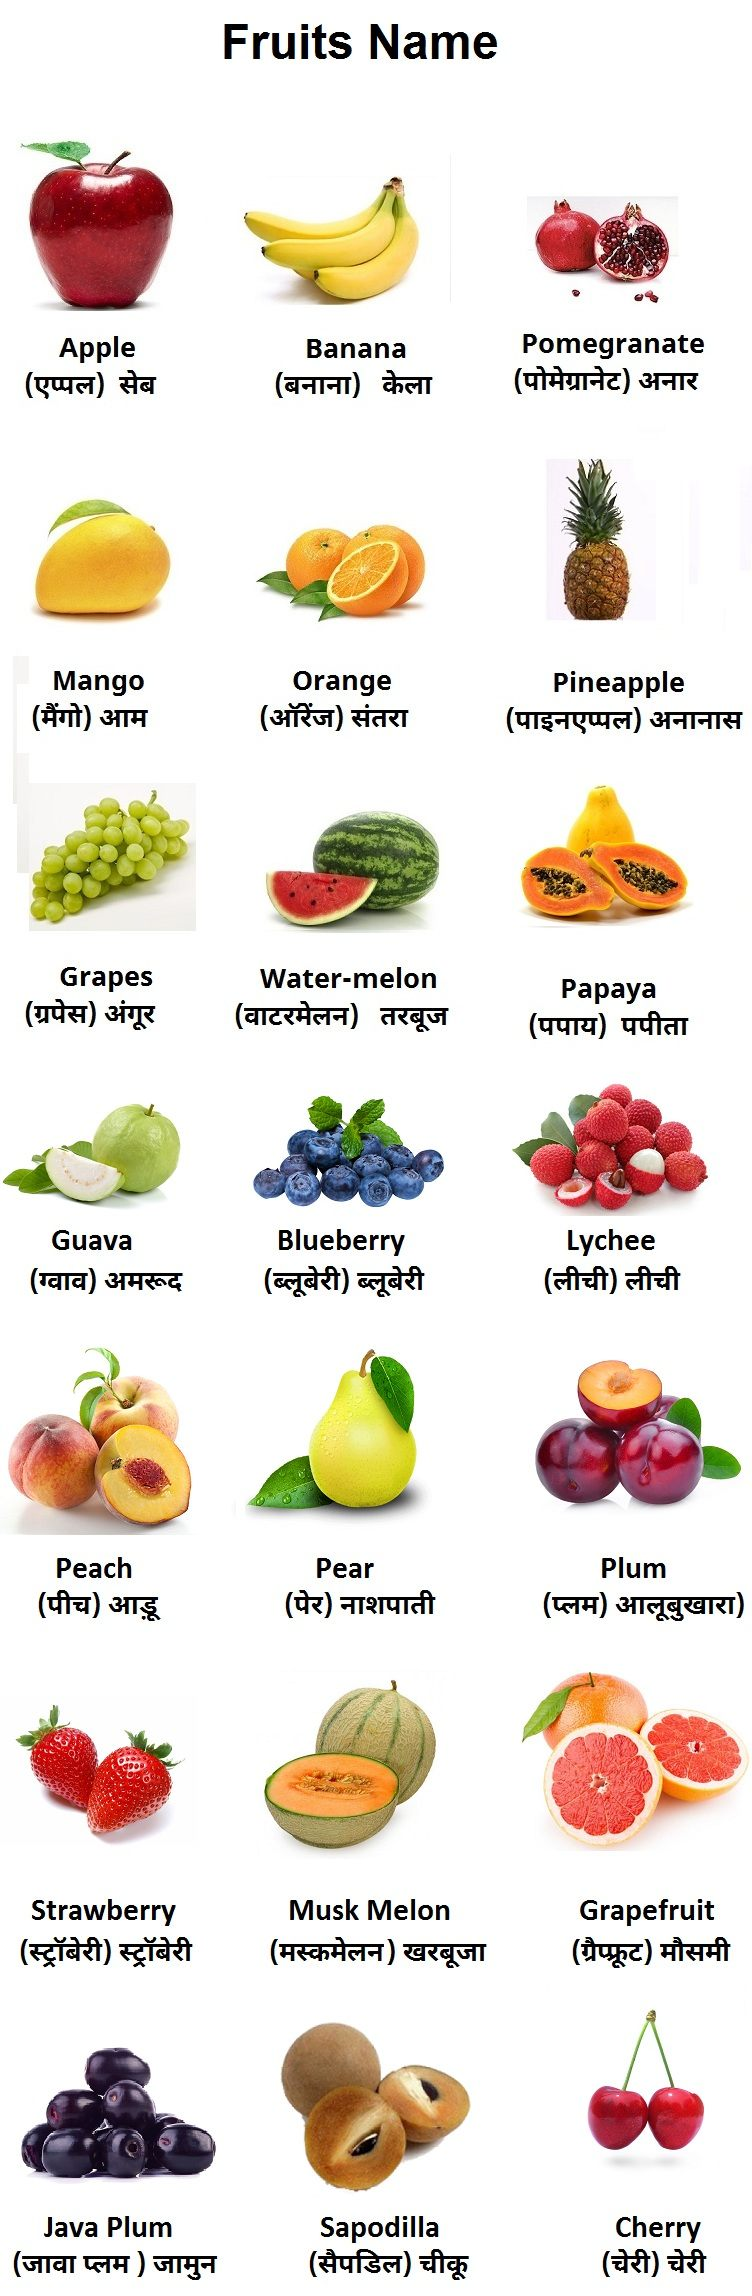 All fruits with its image - Apple, Banana, Pomergenate, Mango, Organge, Pineapple,Grapes, Watermelon,..